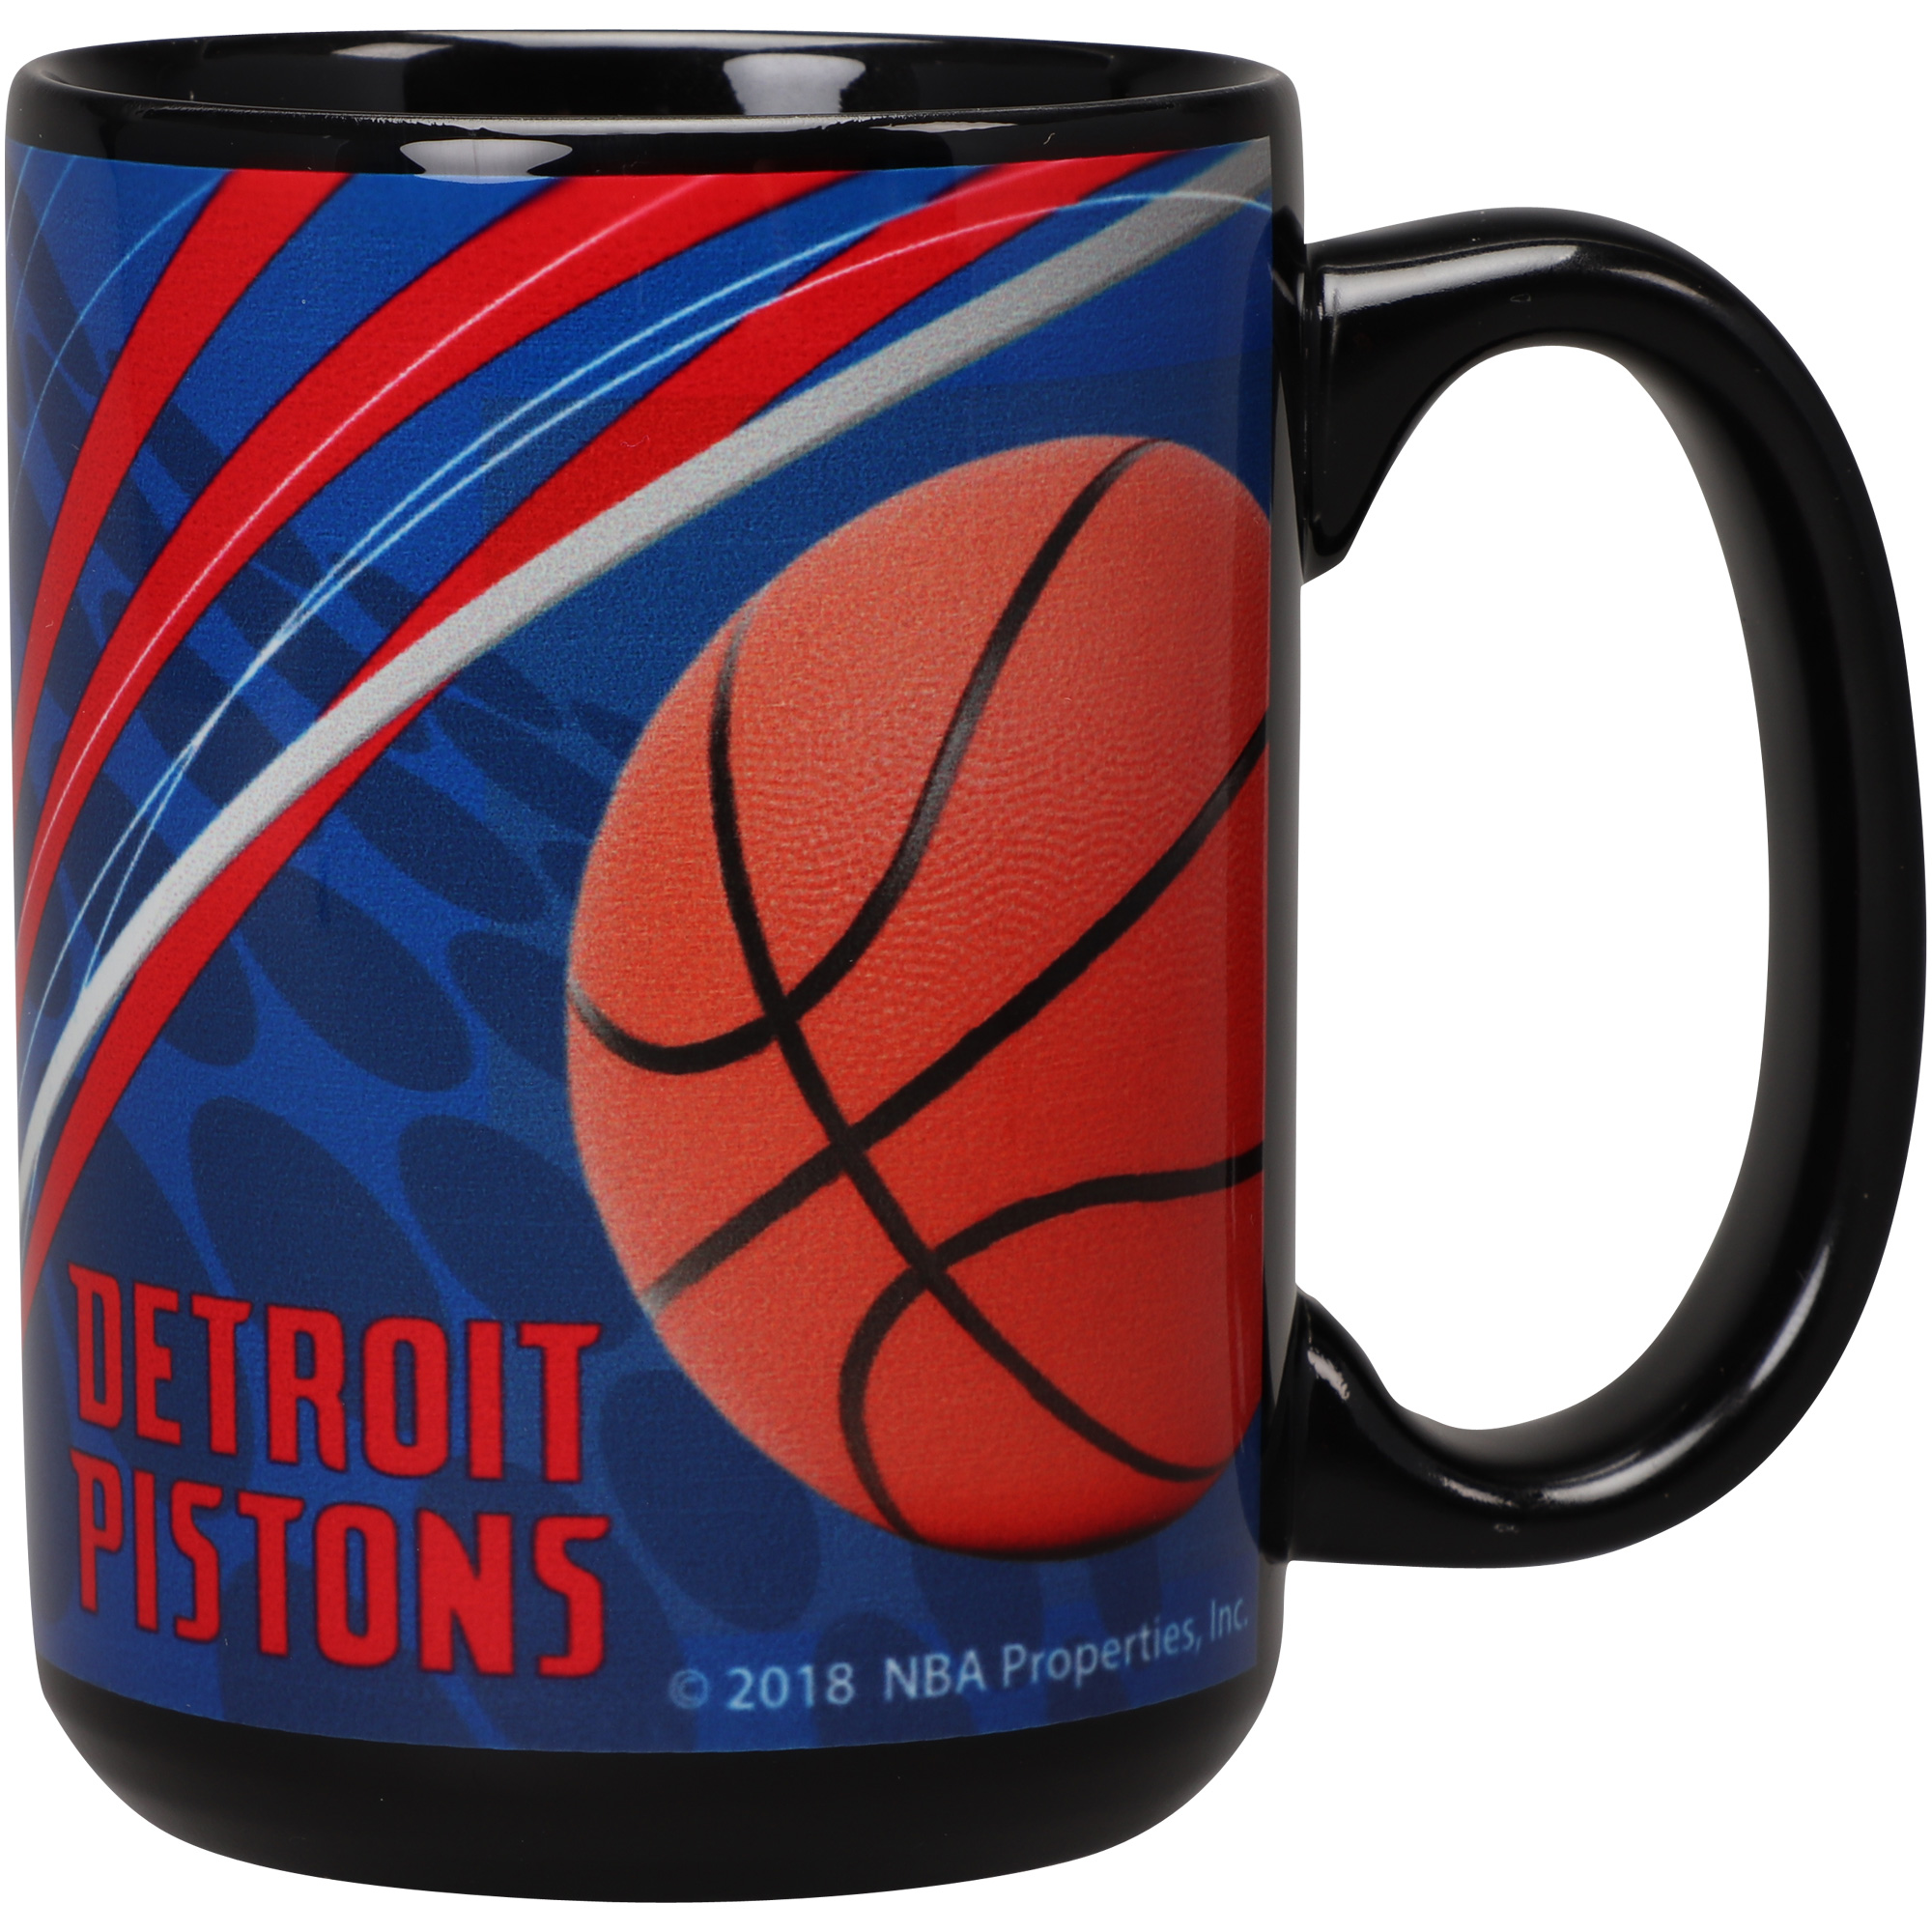 Detroit Pistons 15oz. Dynamic Mug - No Size